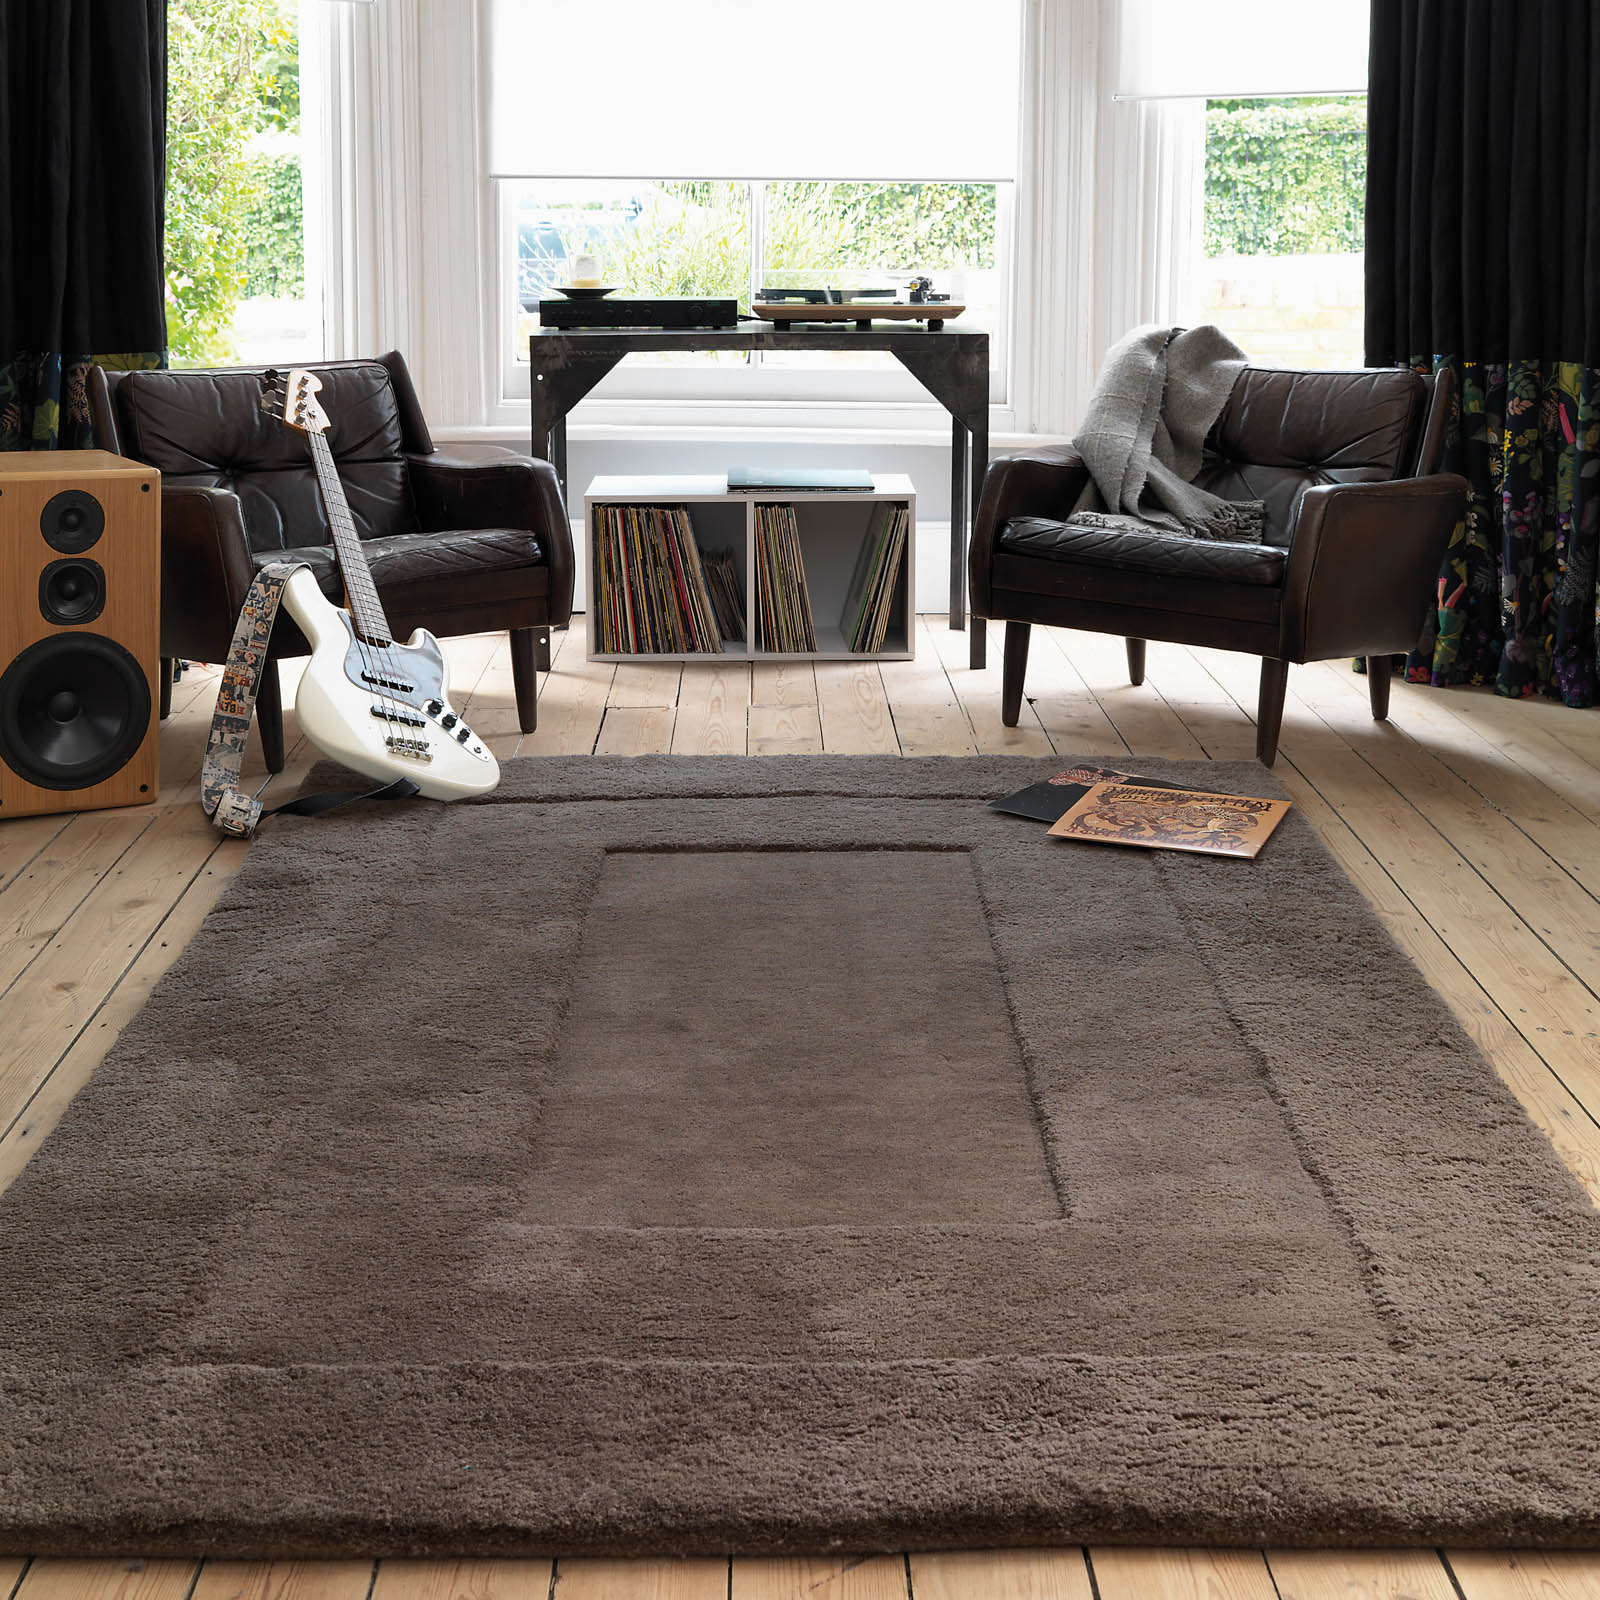 Karma Rugs in Grey Brown KA06